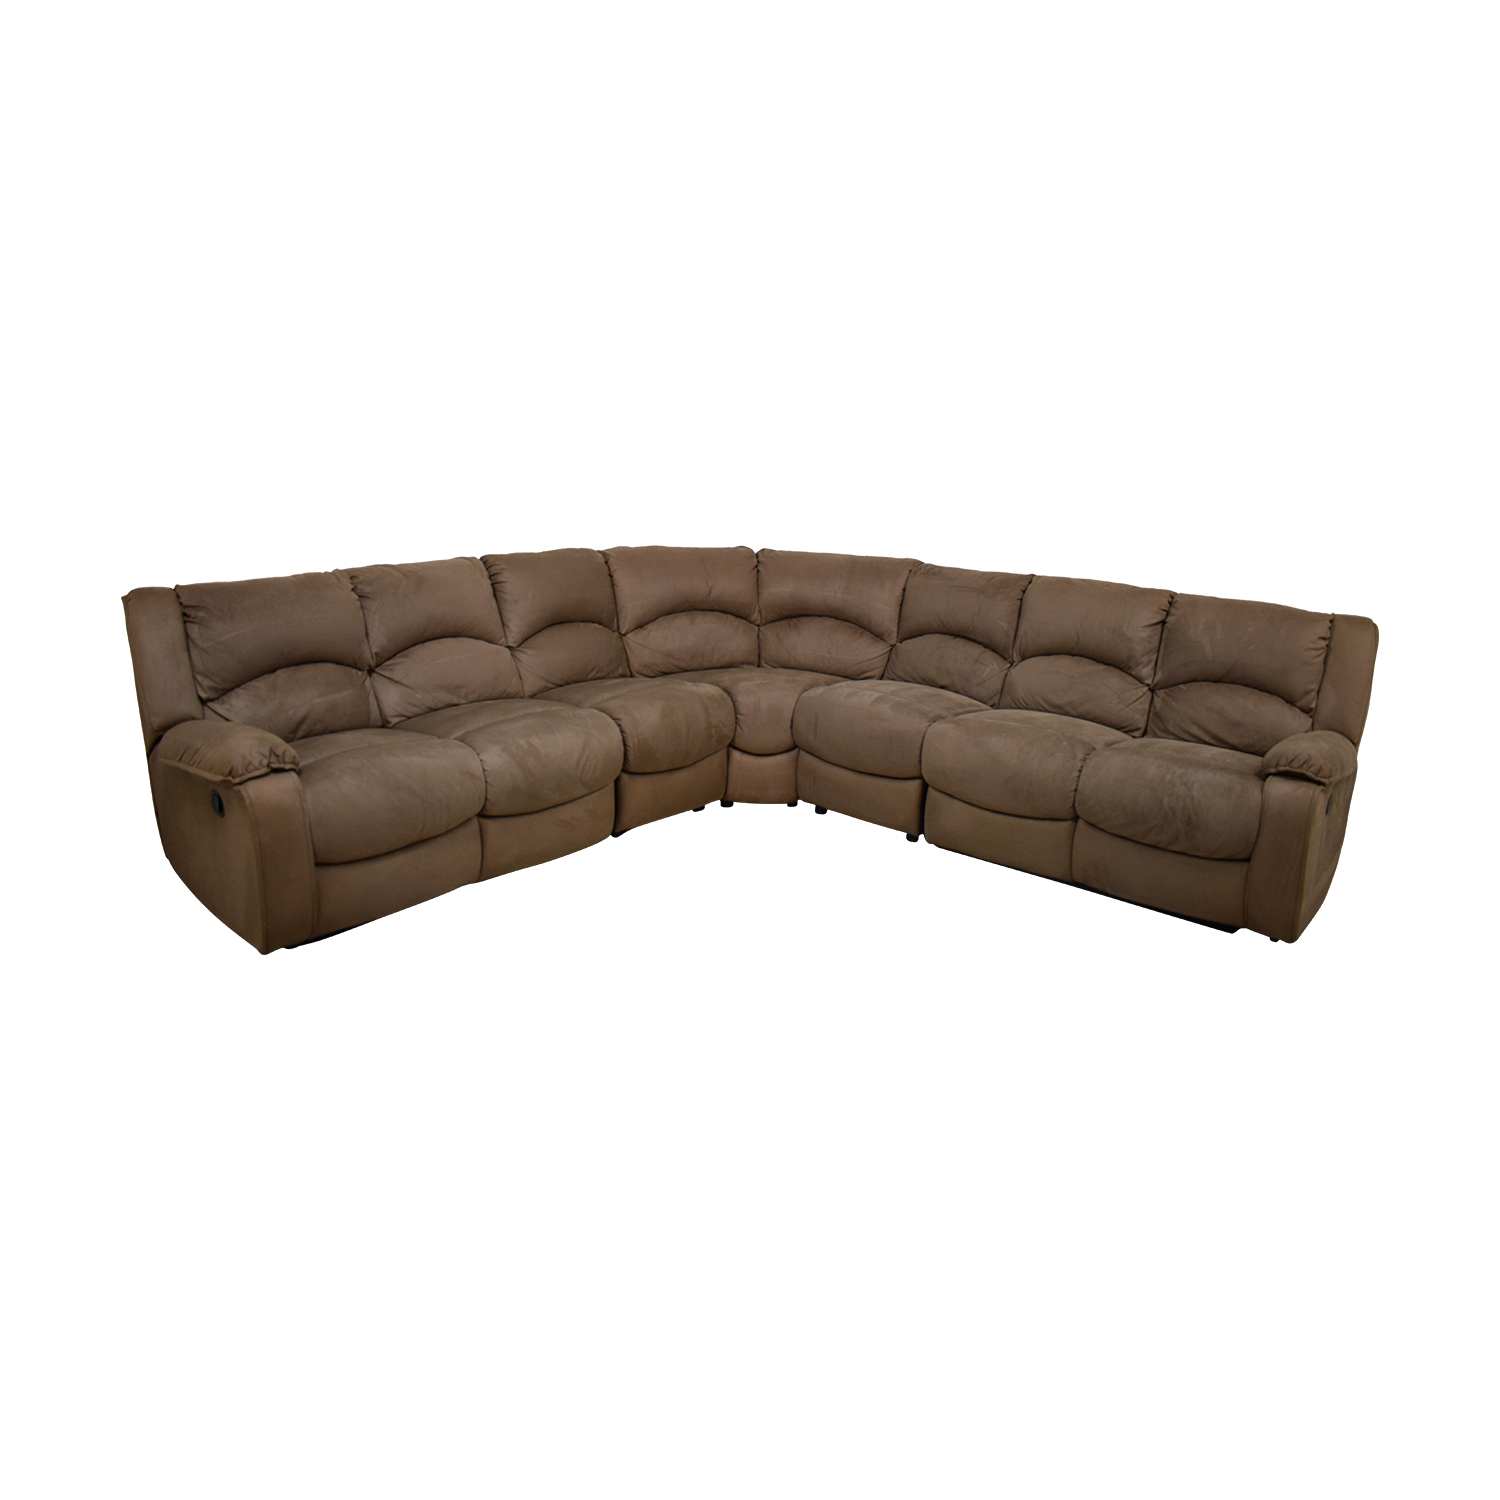 Raymour & Flanigan Raymour & Flanigan Mocha Microfiber L-Shaped Sectional for sale